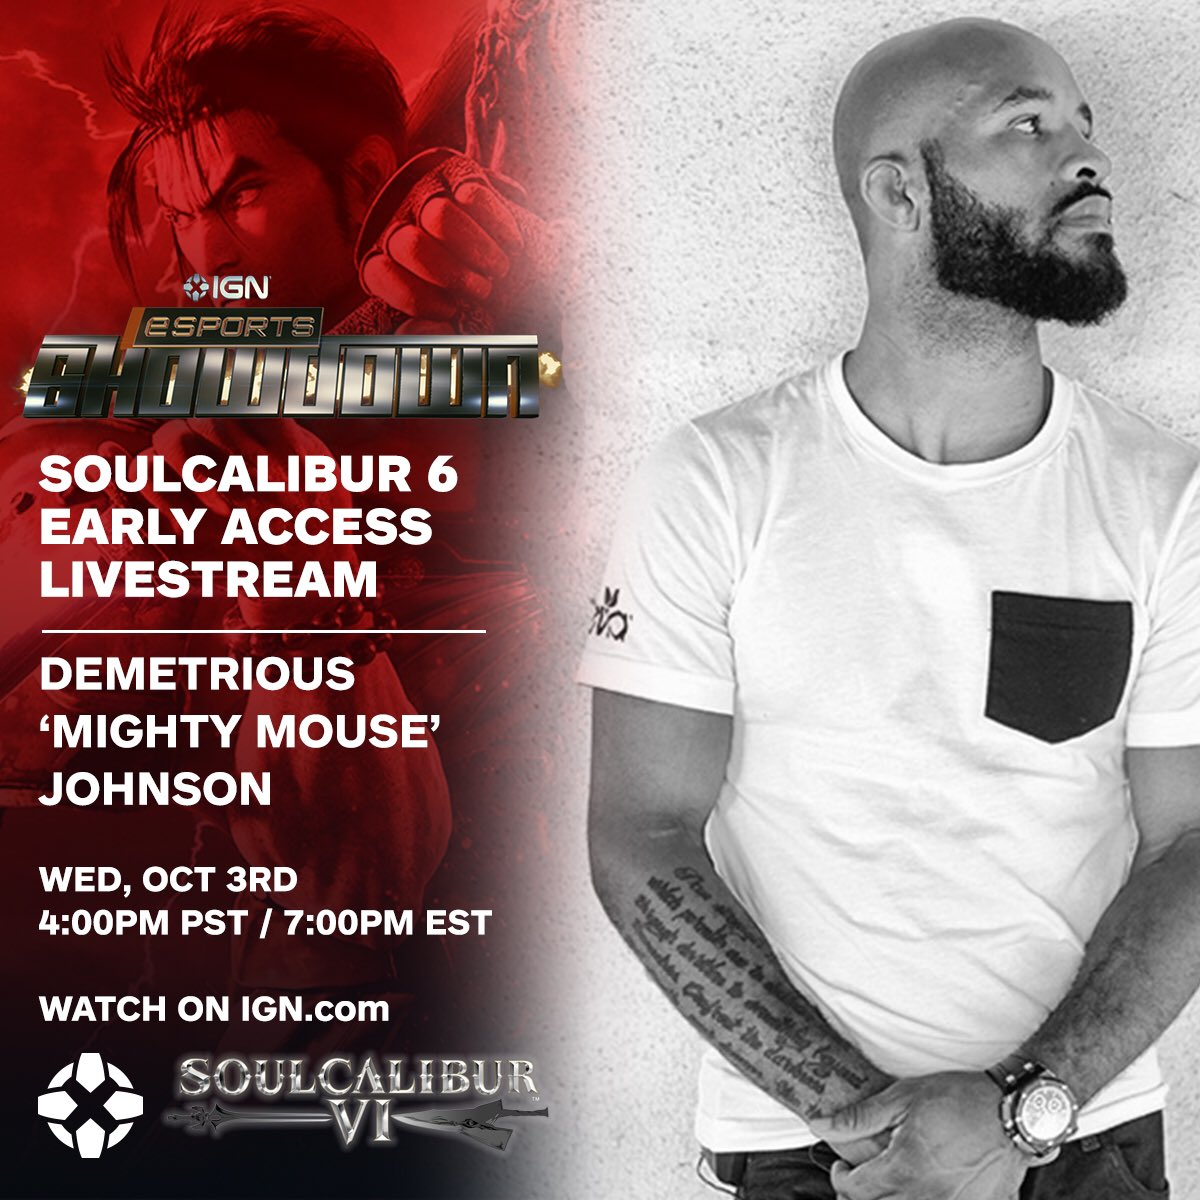 I'm facing off in the @IGN esports showdown tomorrow night at 7PM EST. Watch me play Soulcalibur VI Live! https://t.co/bWKwgAbgRz